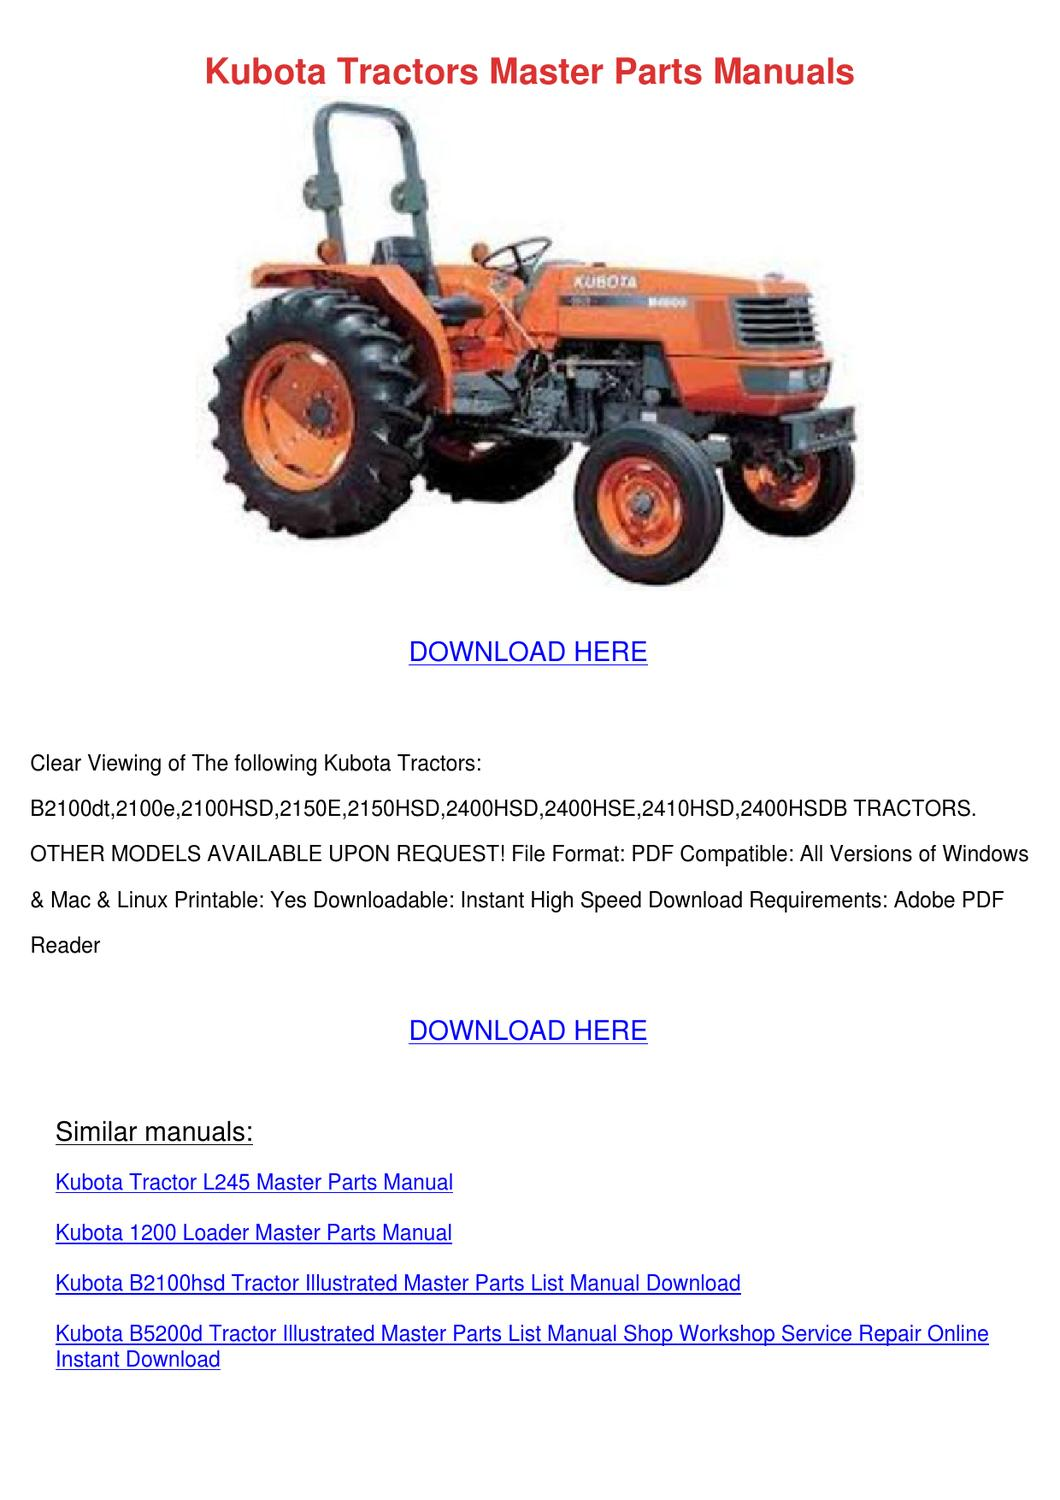 Kubota Tractor Salvage : Kubota tractors master parts manuals by hannahcoble issuu